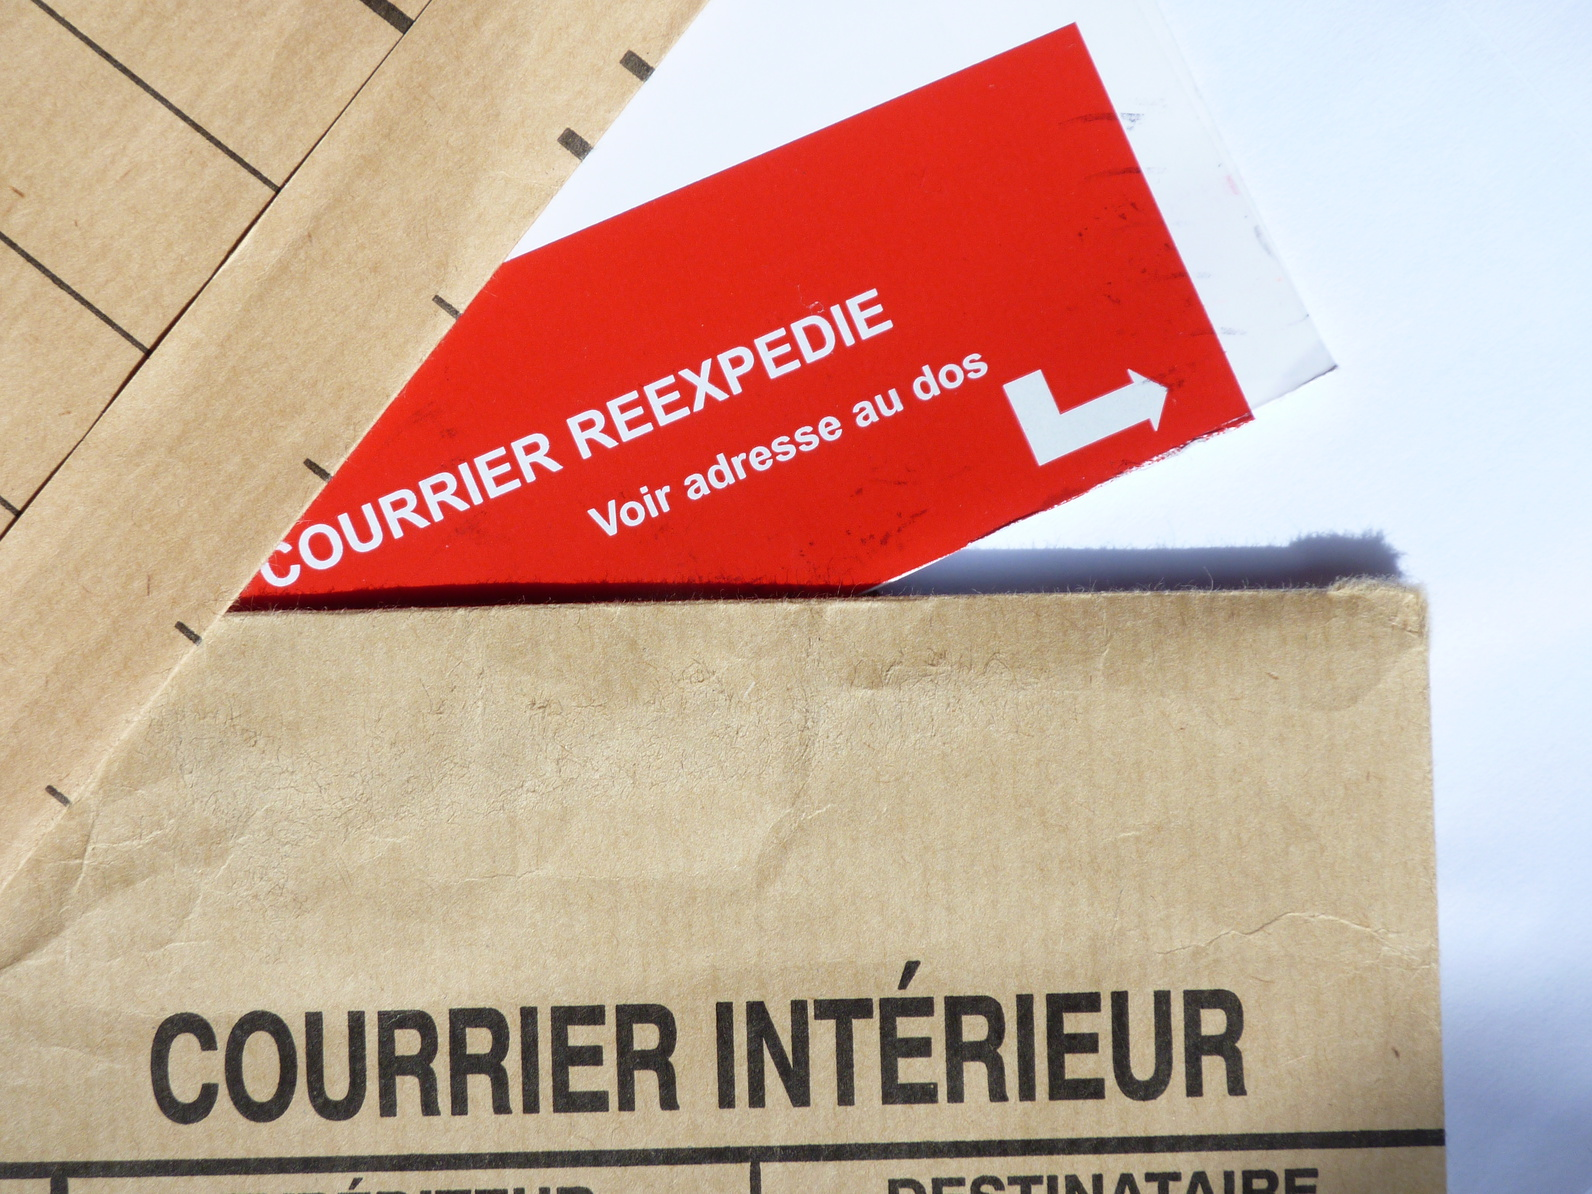 Faire suivre son courrier for Reexpedition du courrier temporaire